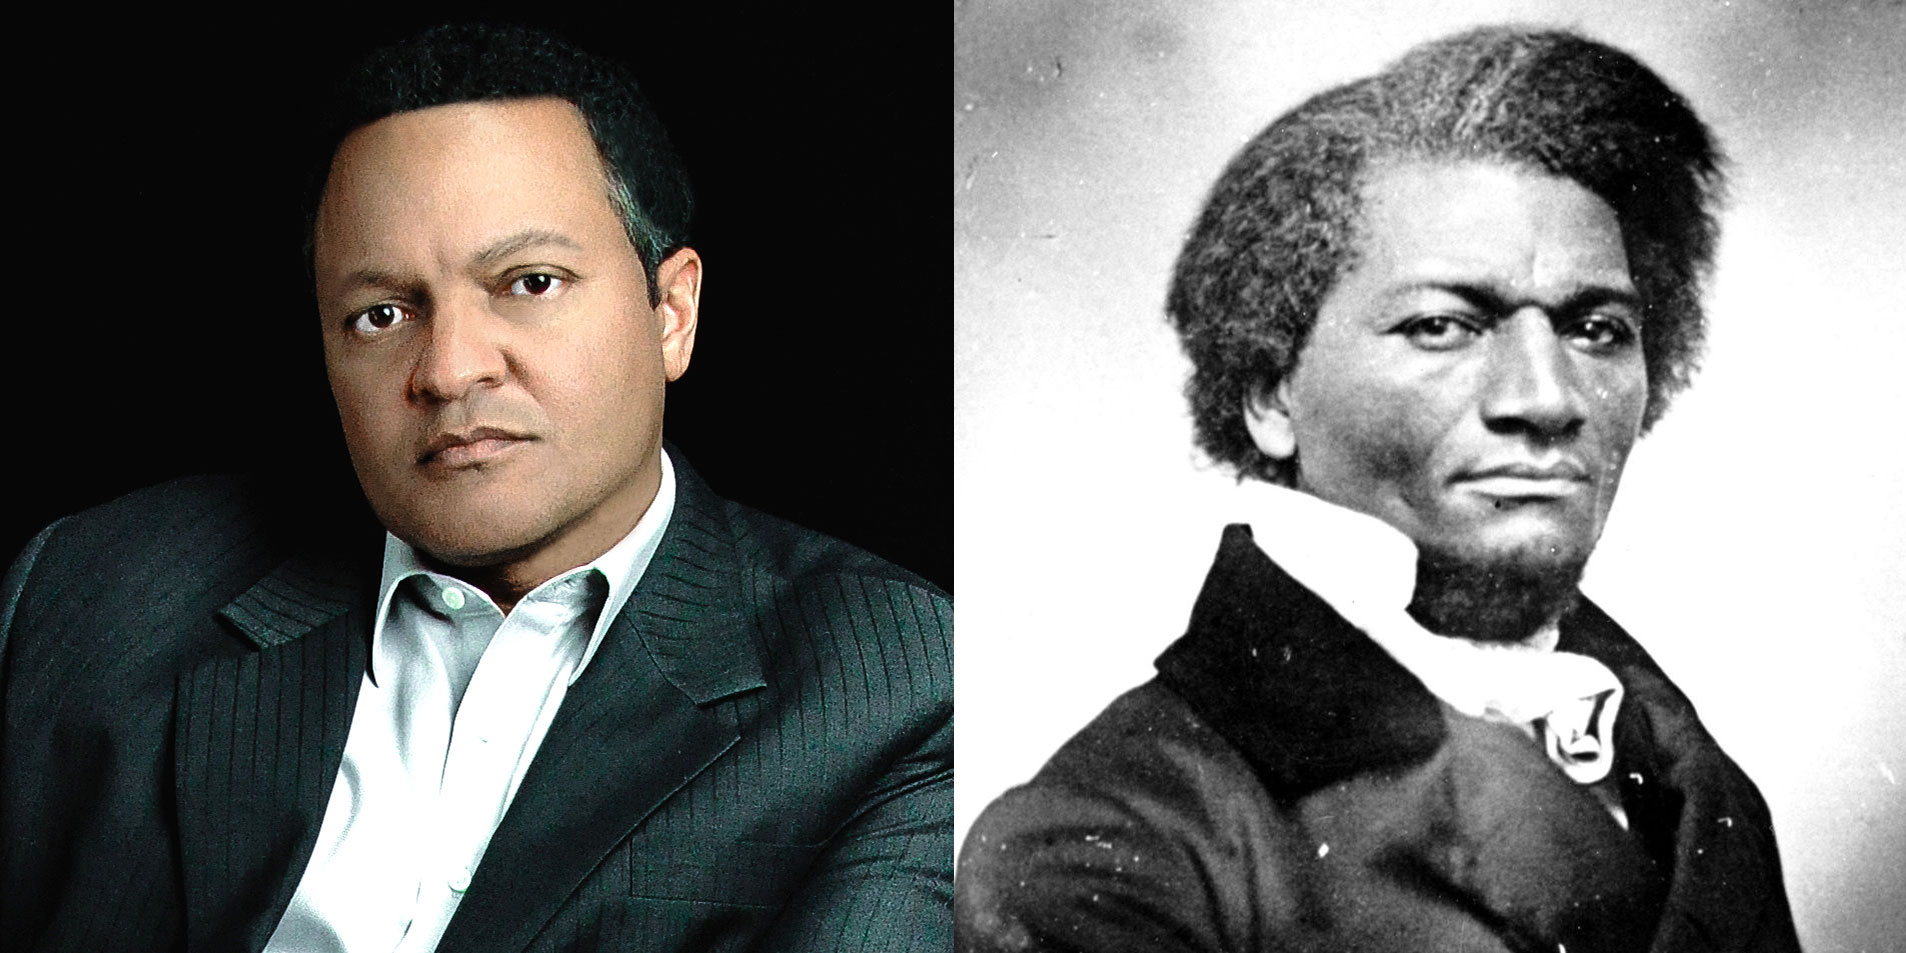 Kenneth B. Morris, Jr., great-great-great grandson of Frederick Douglass, speaks at The Walden Woods Project on September 17th.